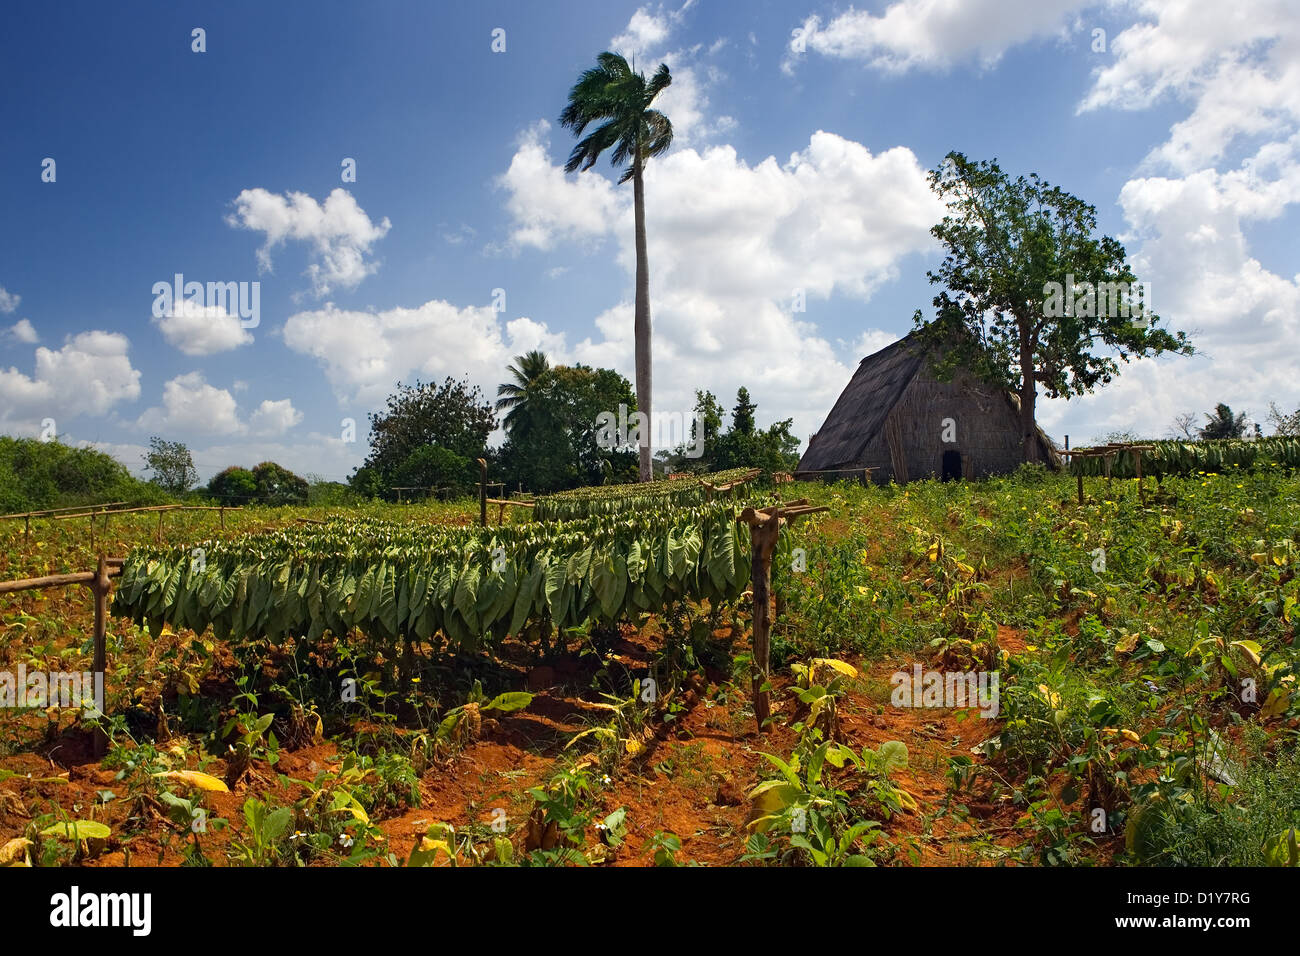 Tobacco drying in field, Vinales, Cuba - Stock Image